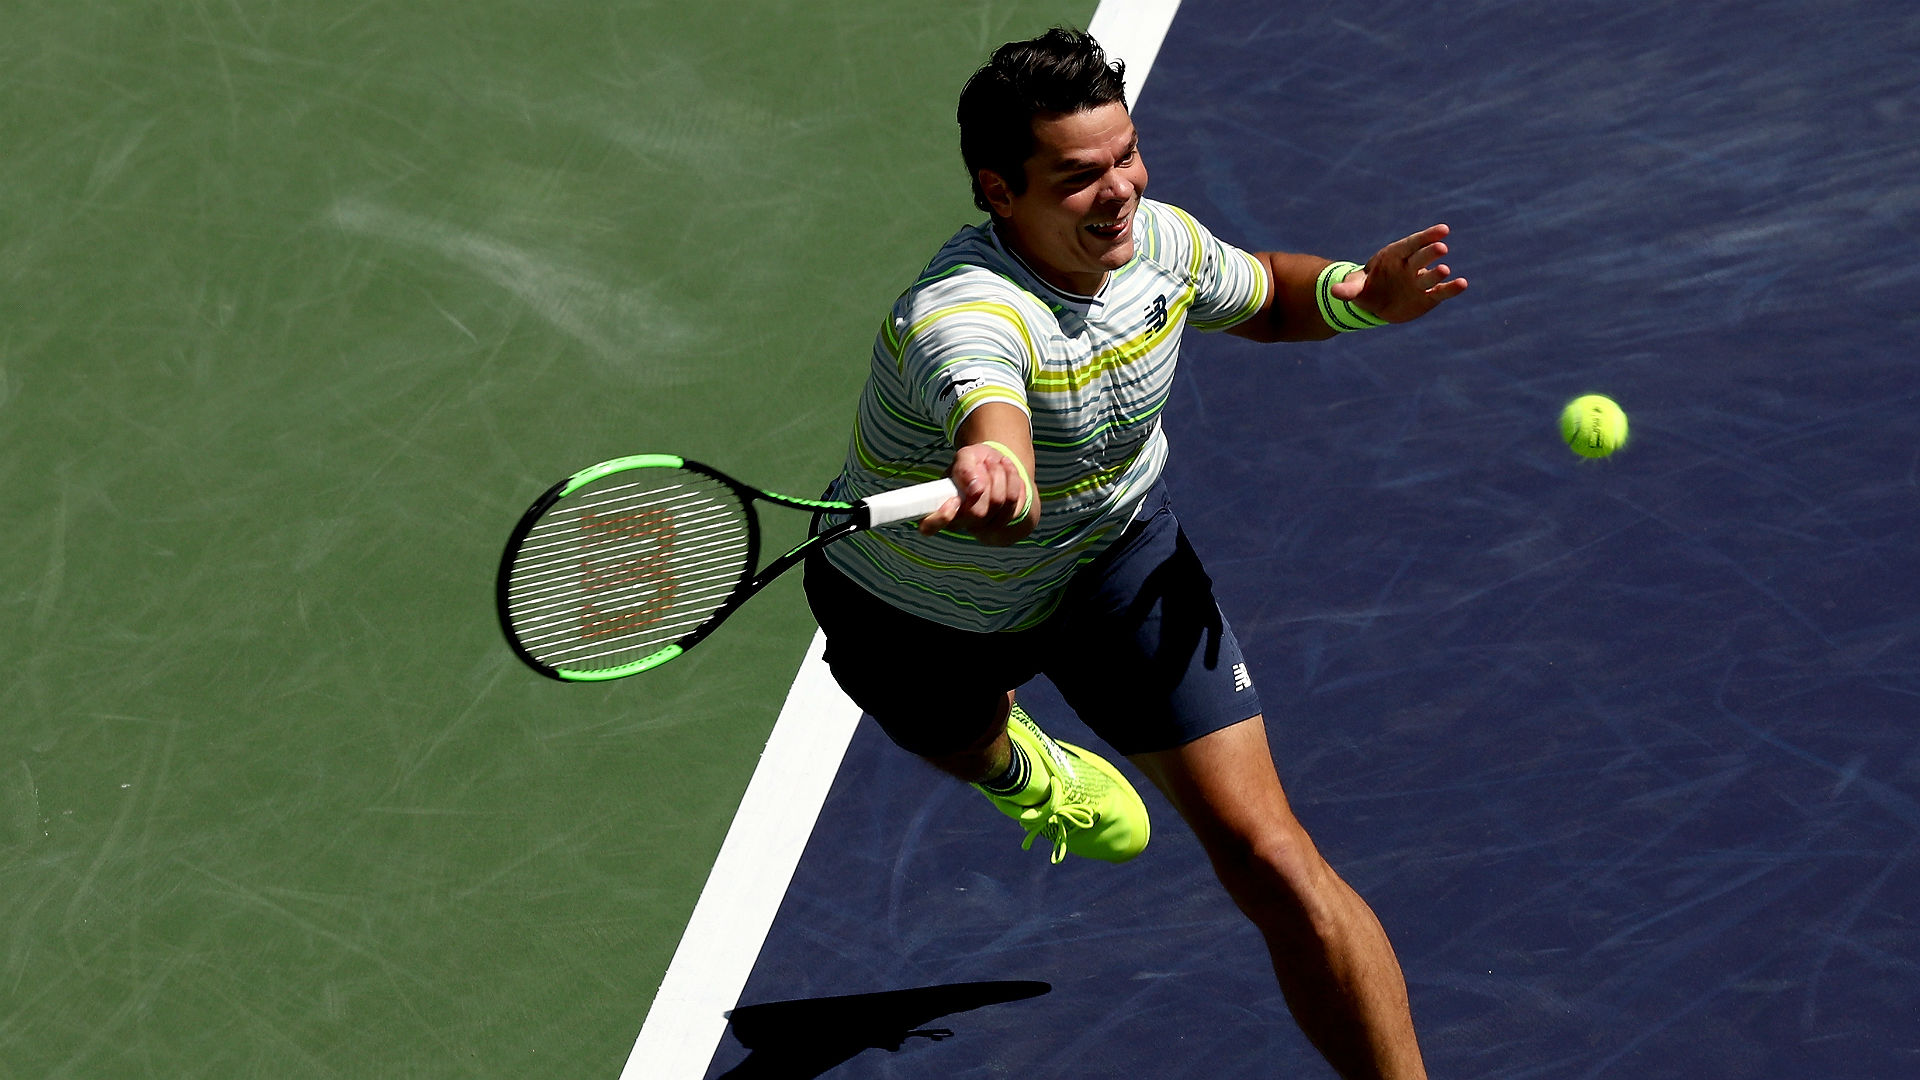 Indian Wells: Federer loses to Juan Martin Del Porto